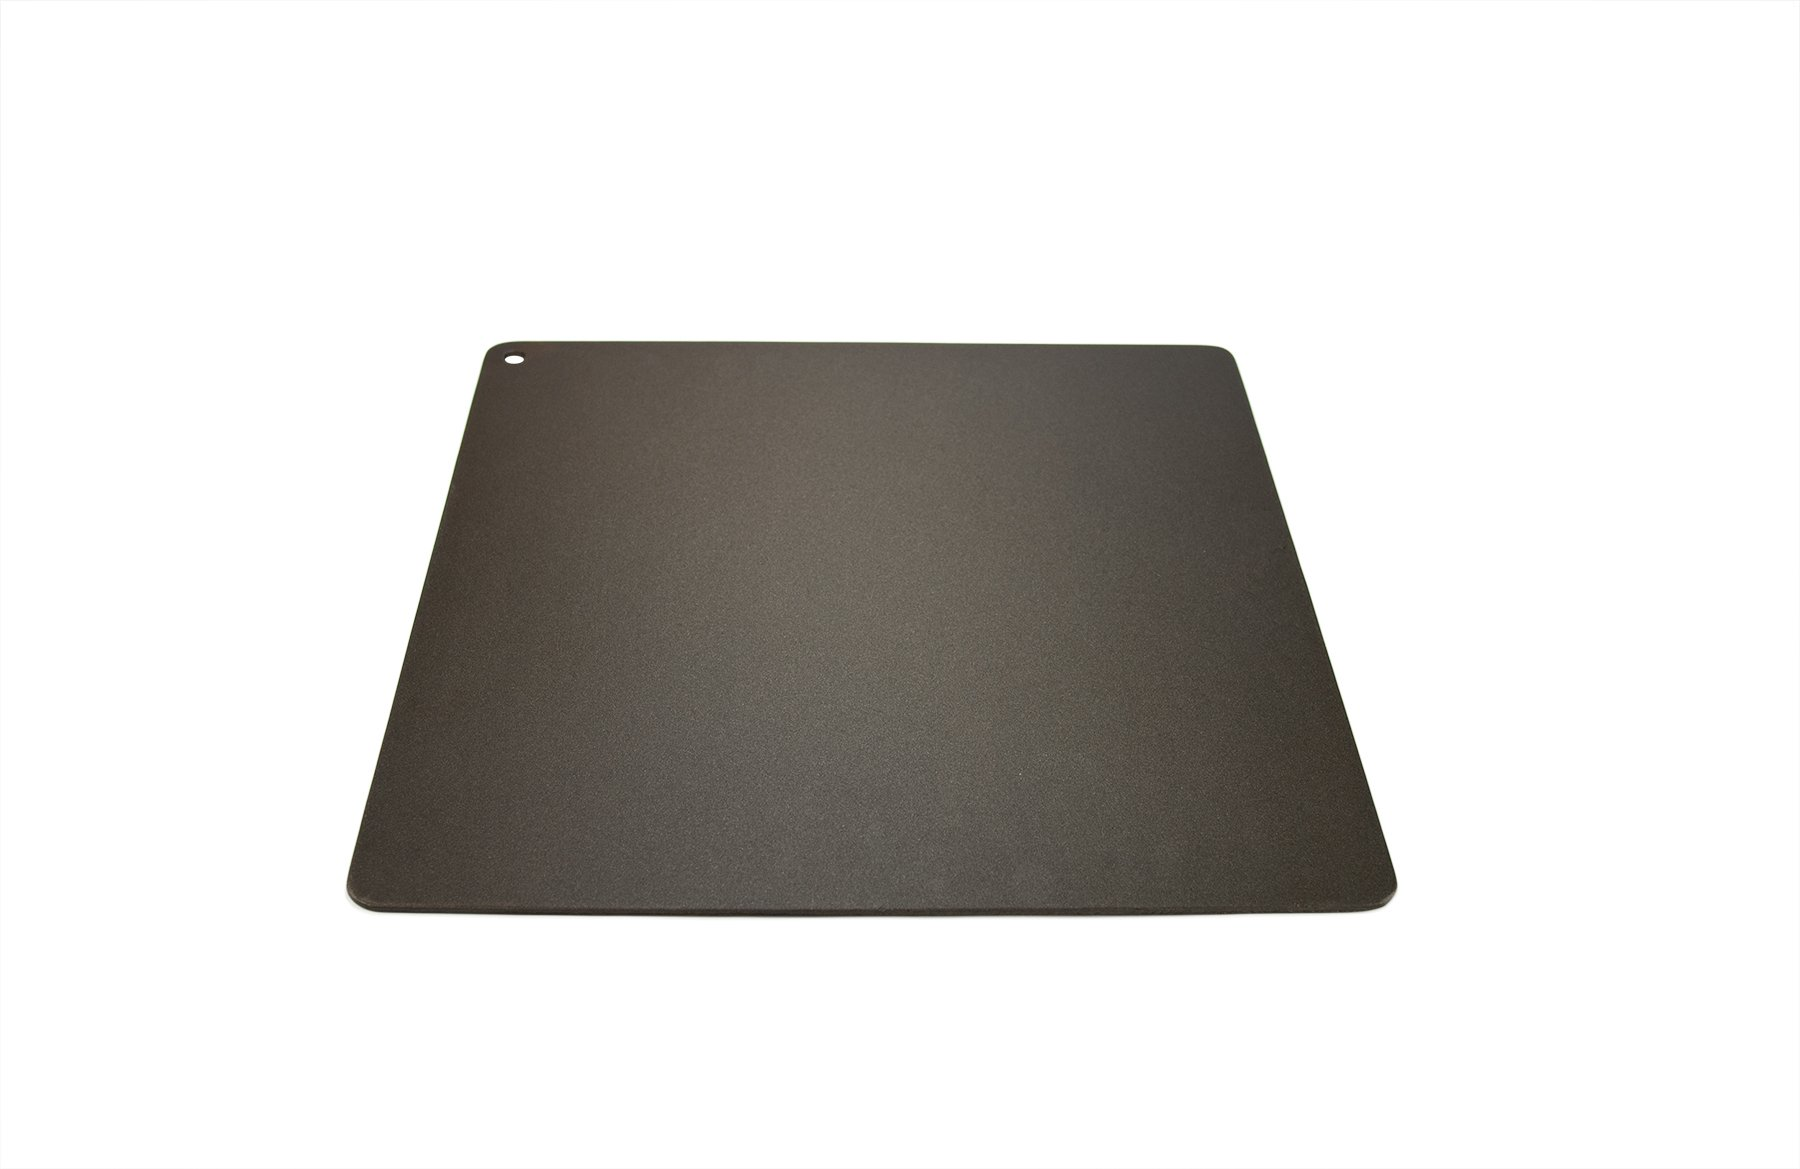 Pizzacraft Square Steel Baking Plate for Kitchen or Barbeque Grill, 14 by 14 - PC0308